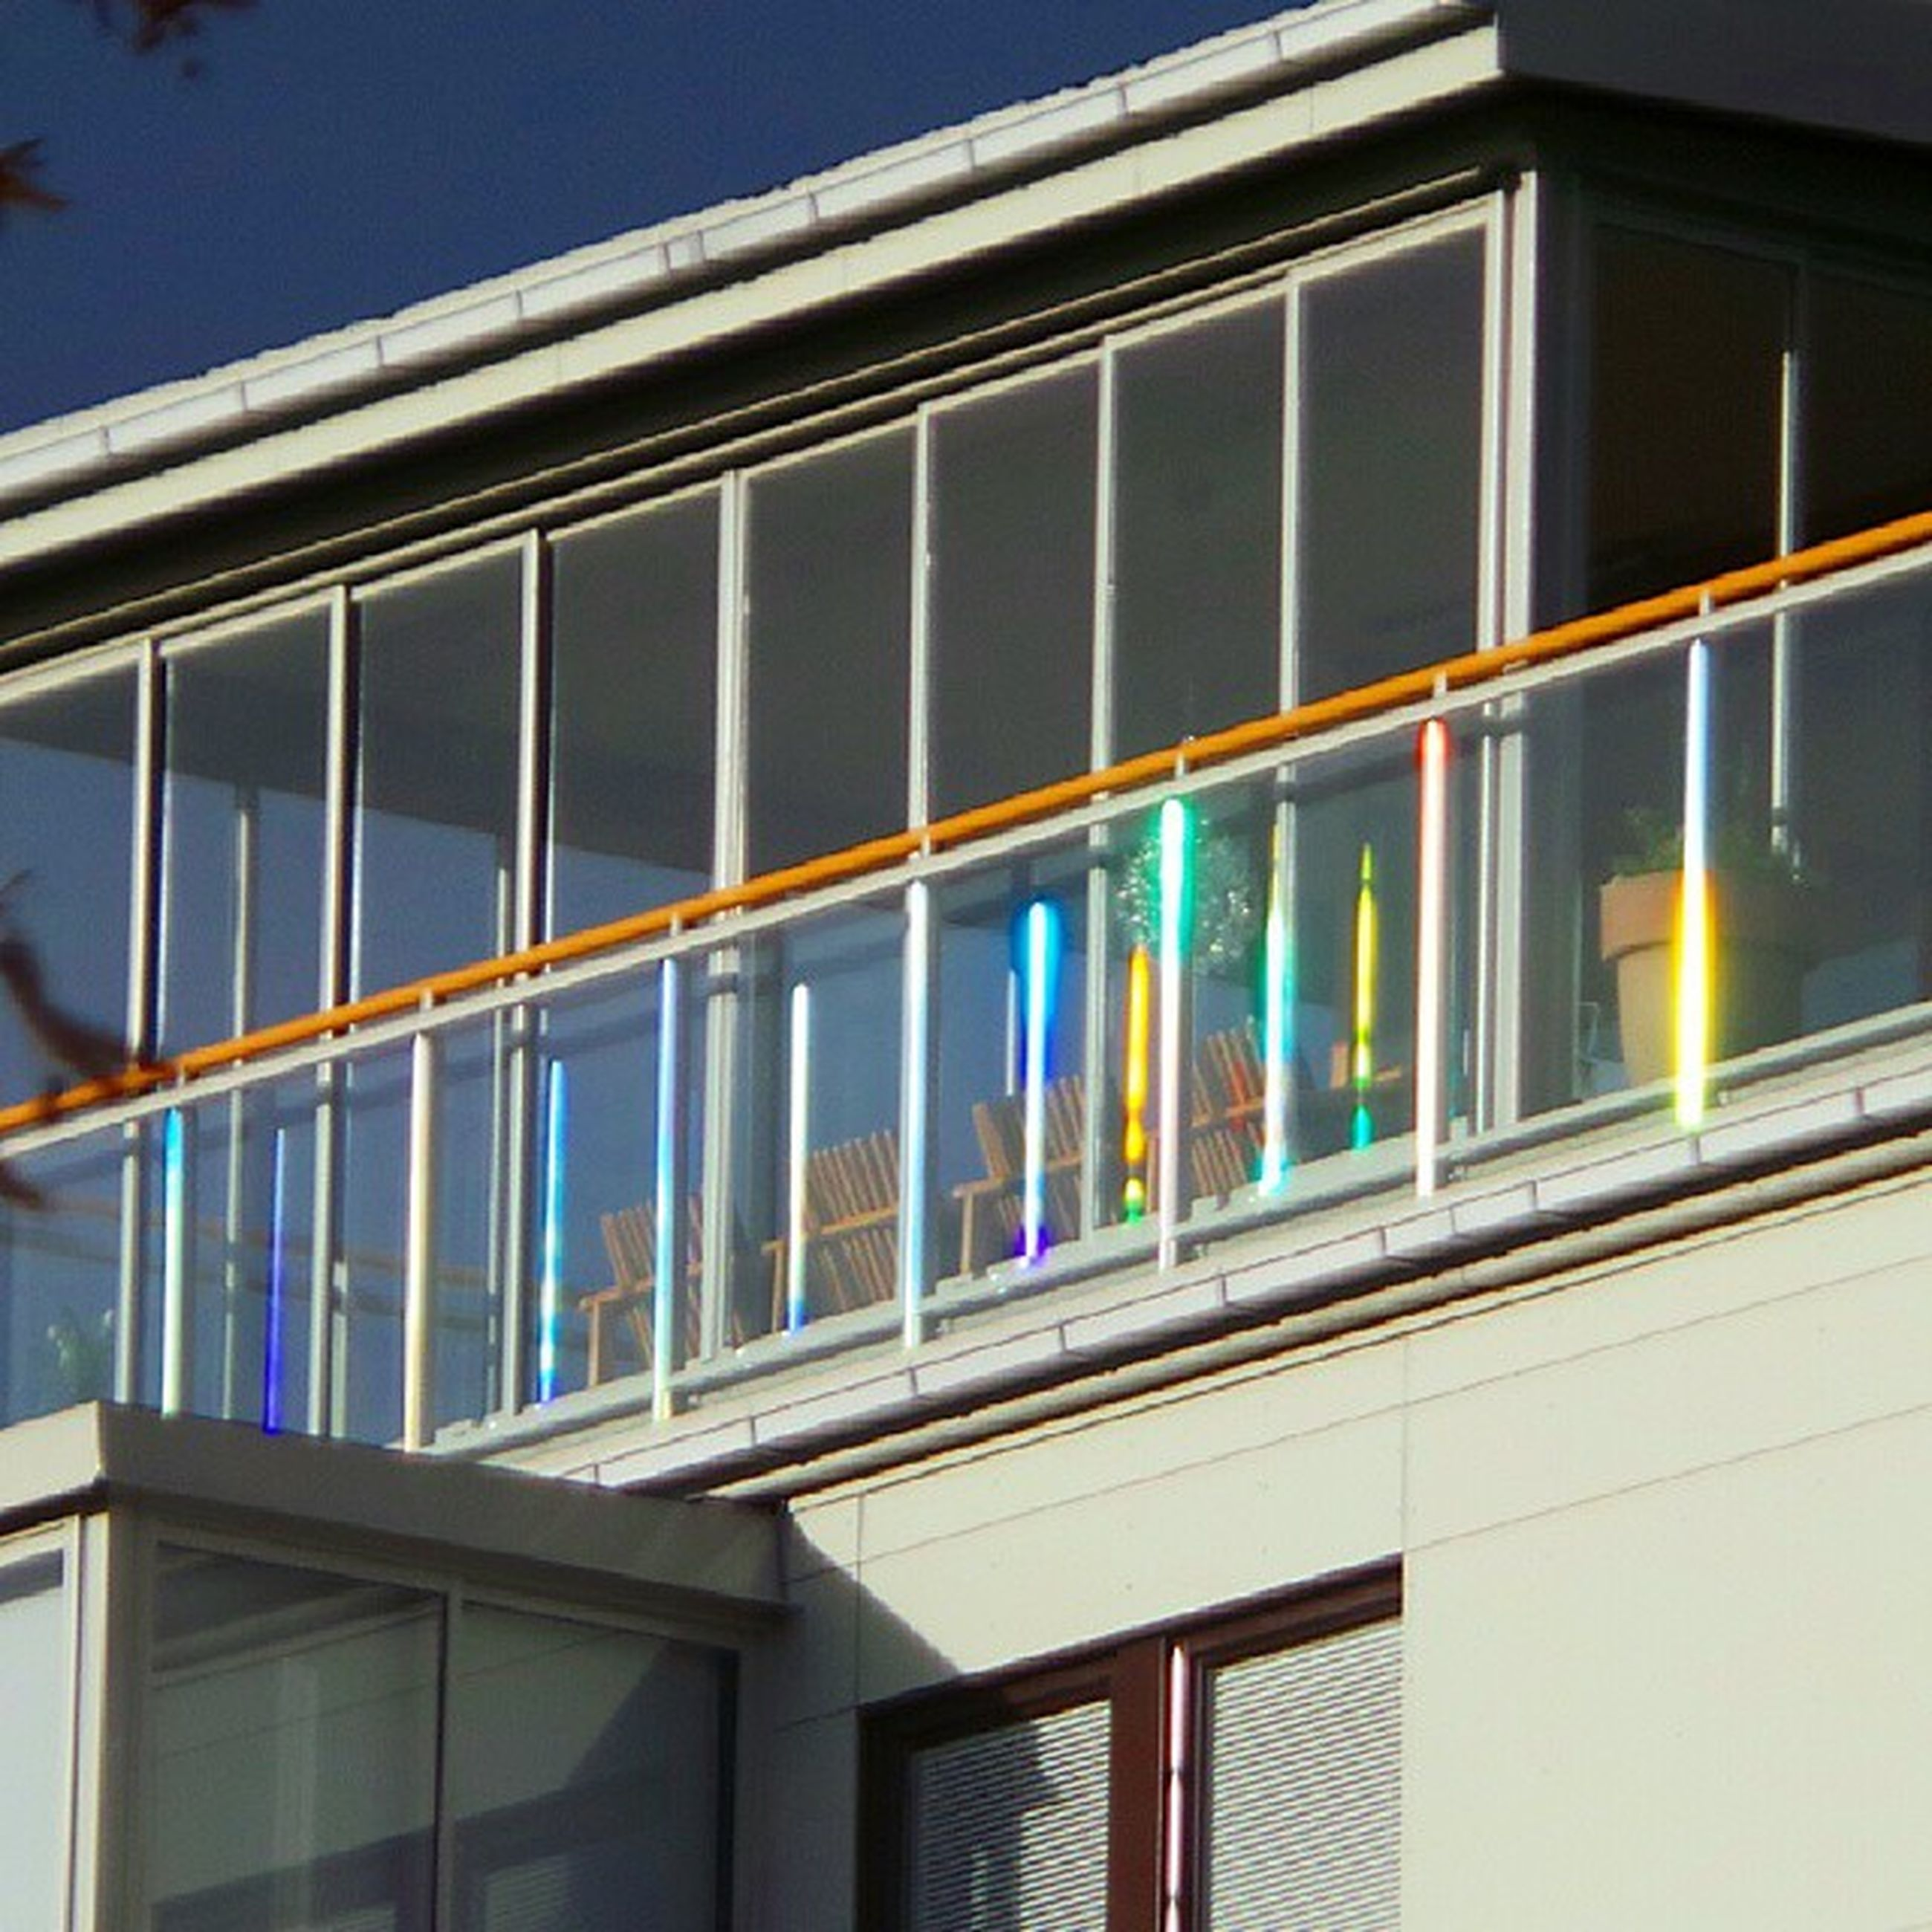 architecture, built structure, building exterior, window, low angle view, glass - material, building, blue, reflection, city, railing, balcony, clear sky, modern, sky, city life, outdoors, day, transparent, illuminated